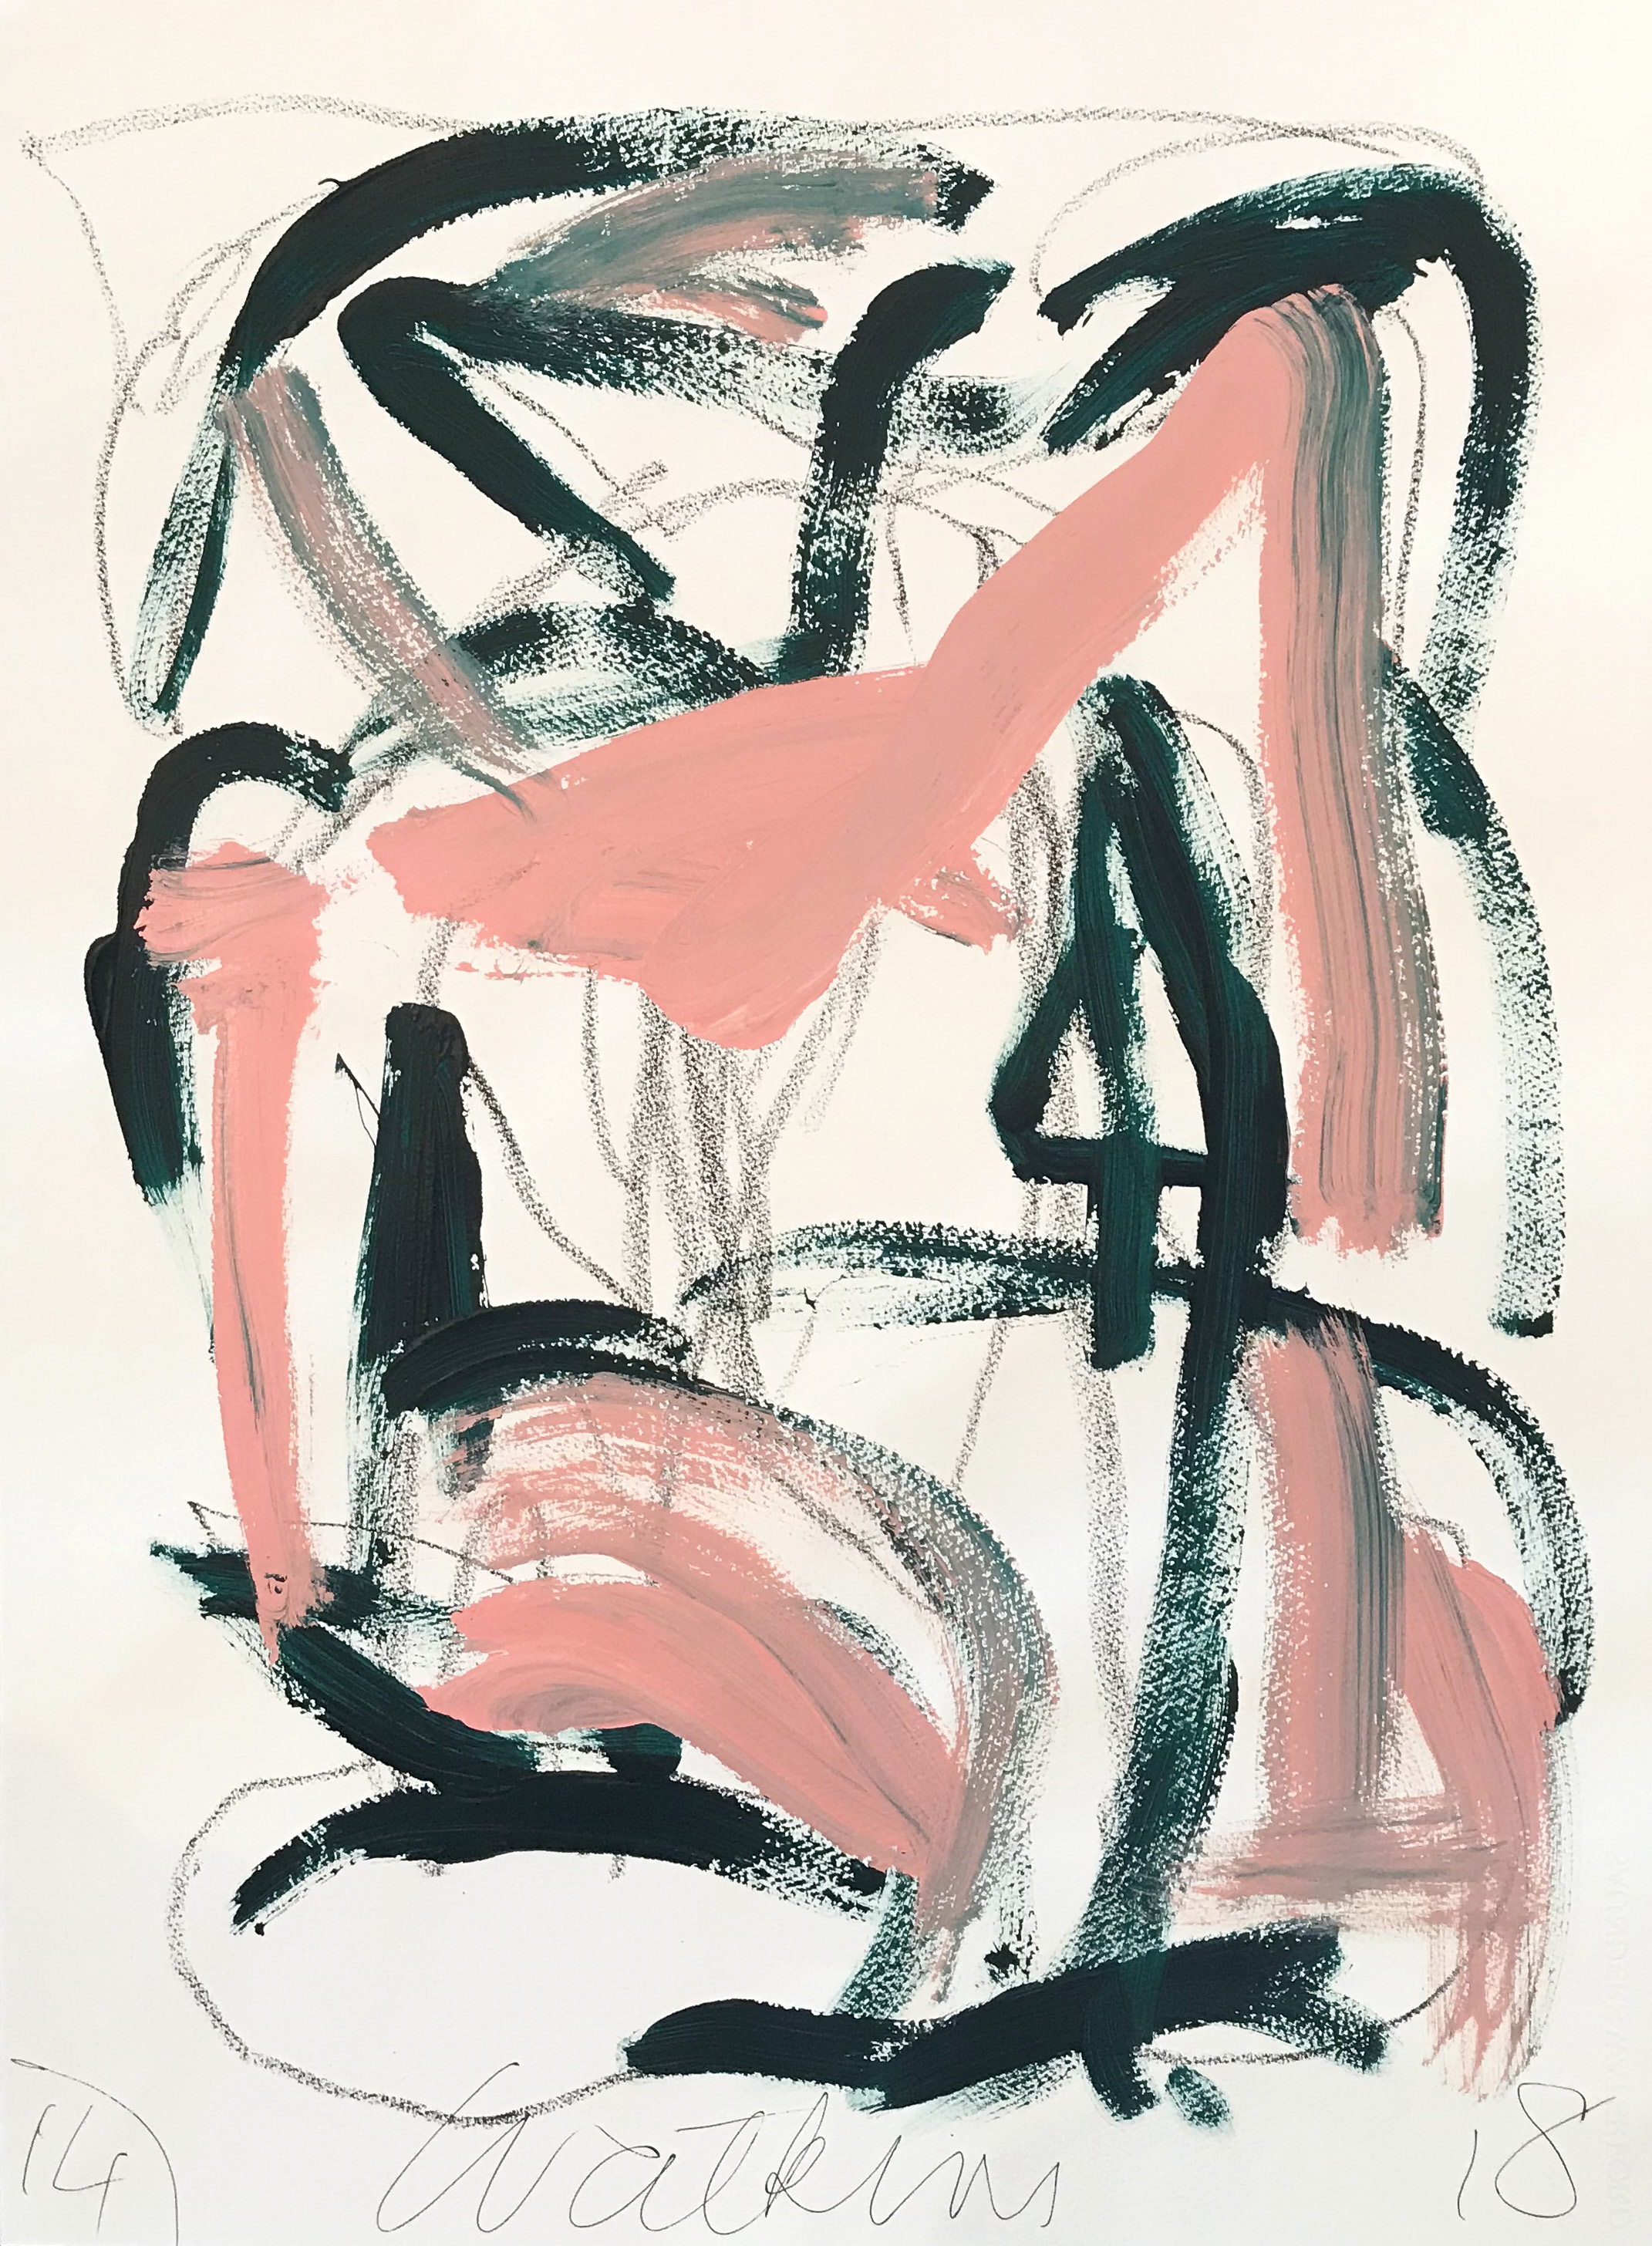 DICK WATKINS  Untitled drawing 14 , 2018 acrylic and pastel on 300gsm paper 76 x 56 cm